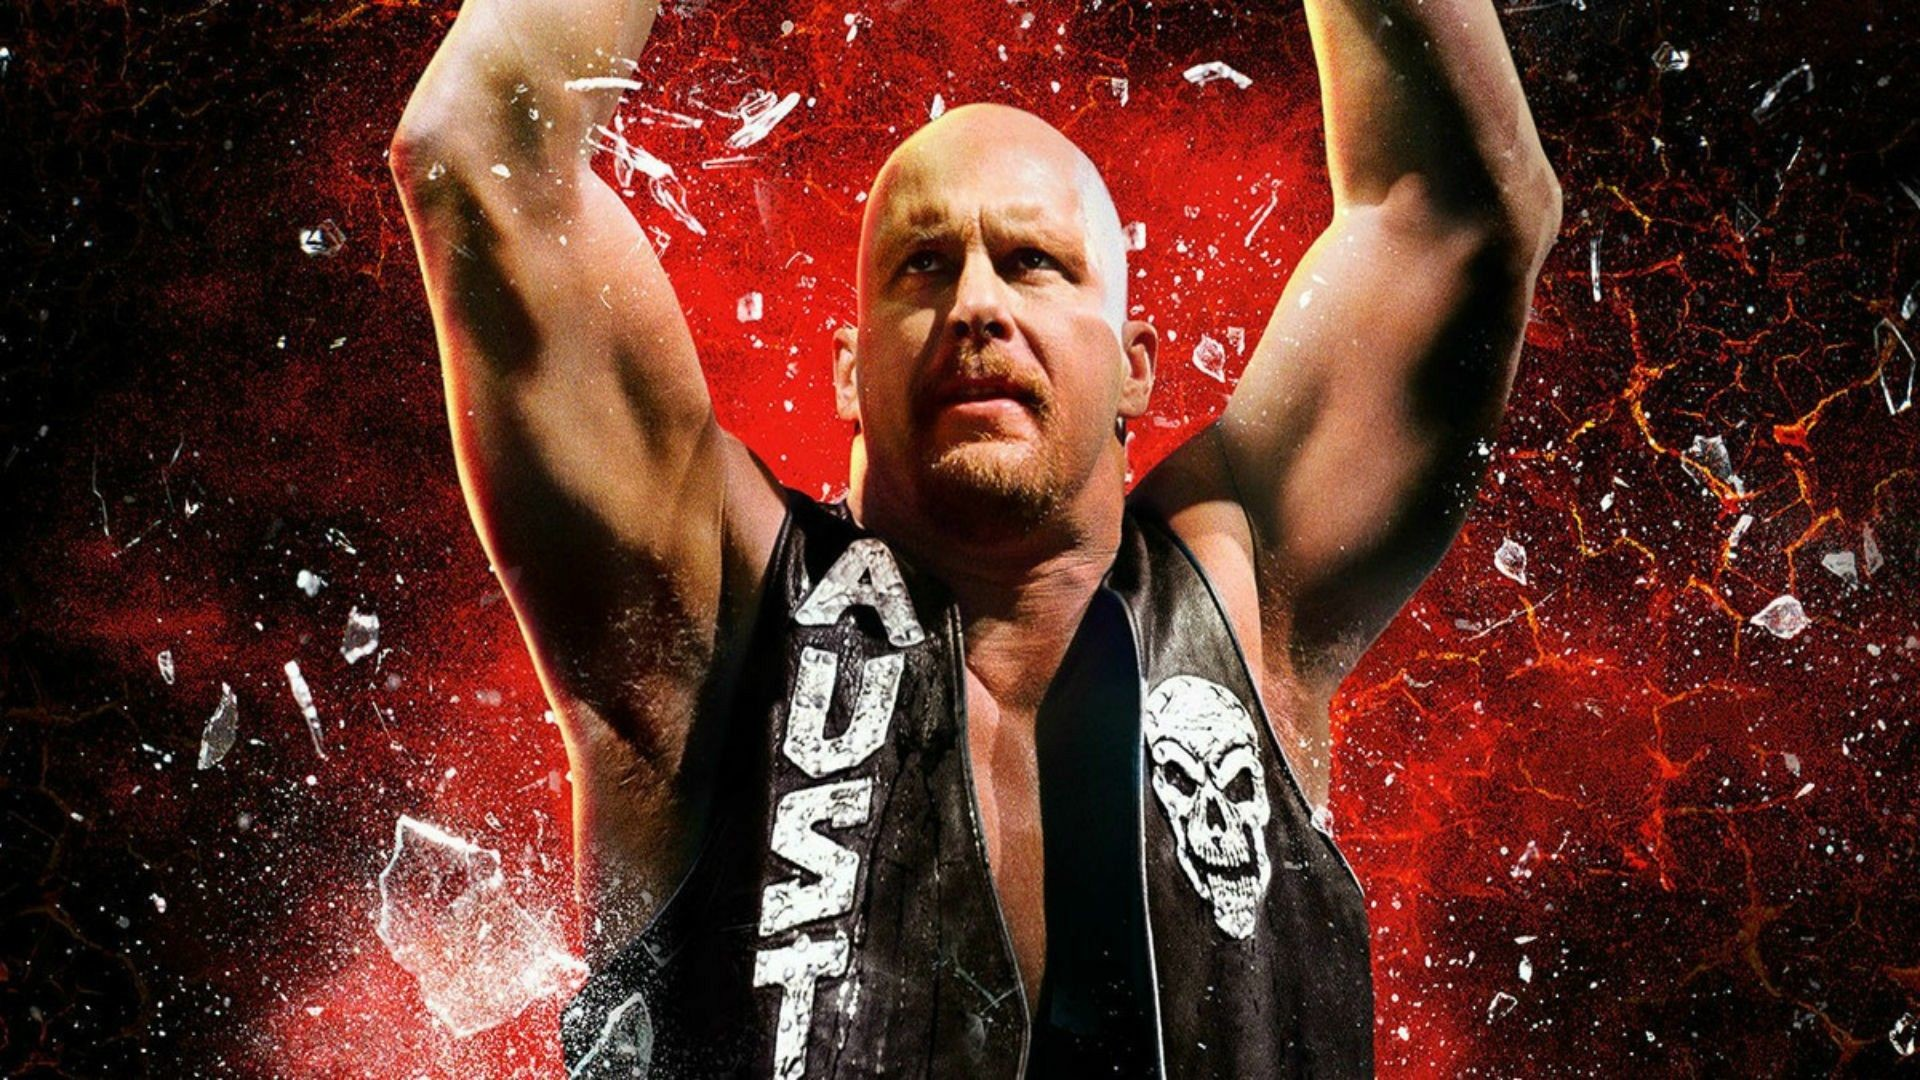 Steve Austin Wallpapers 83 Pictures